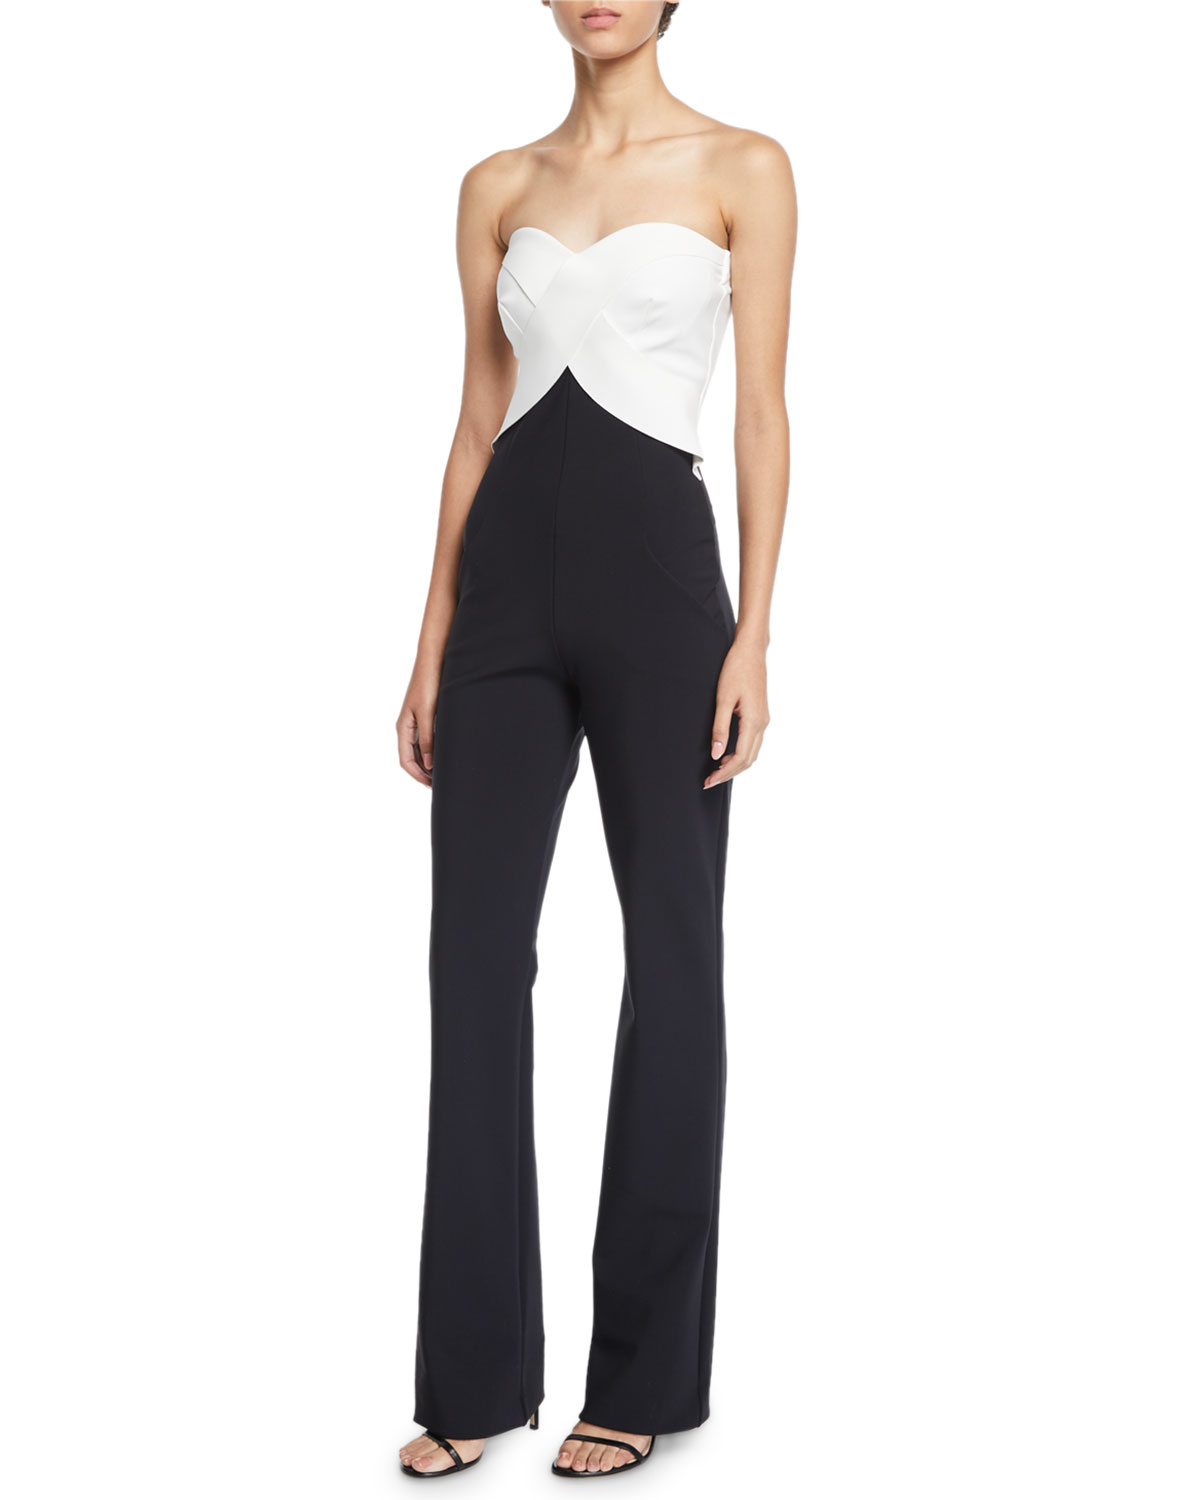 Bodily Strapless Two-Tone Jumpsuit in Black/White